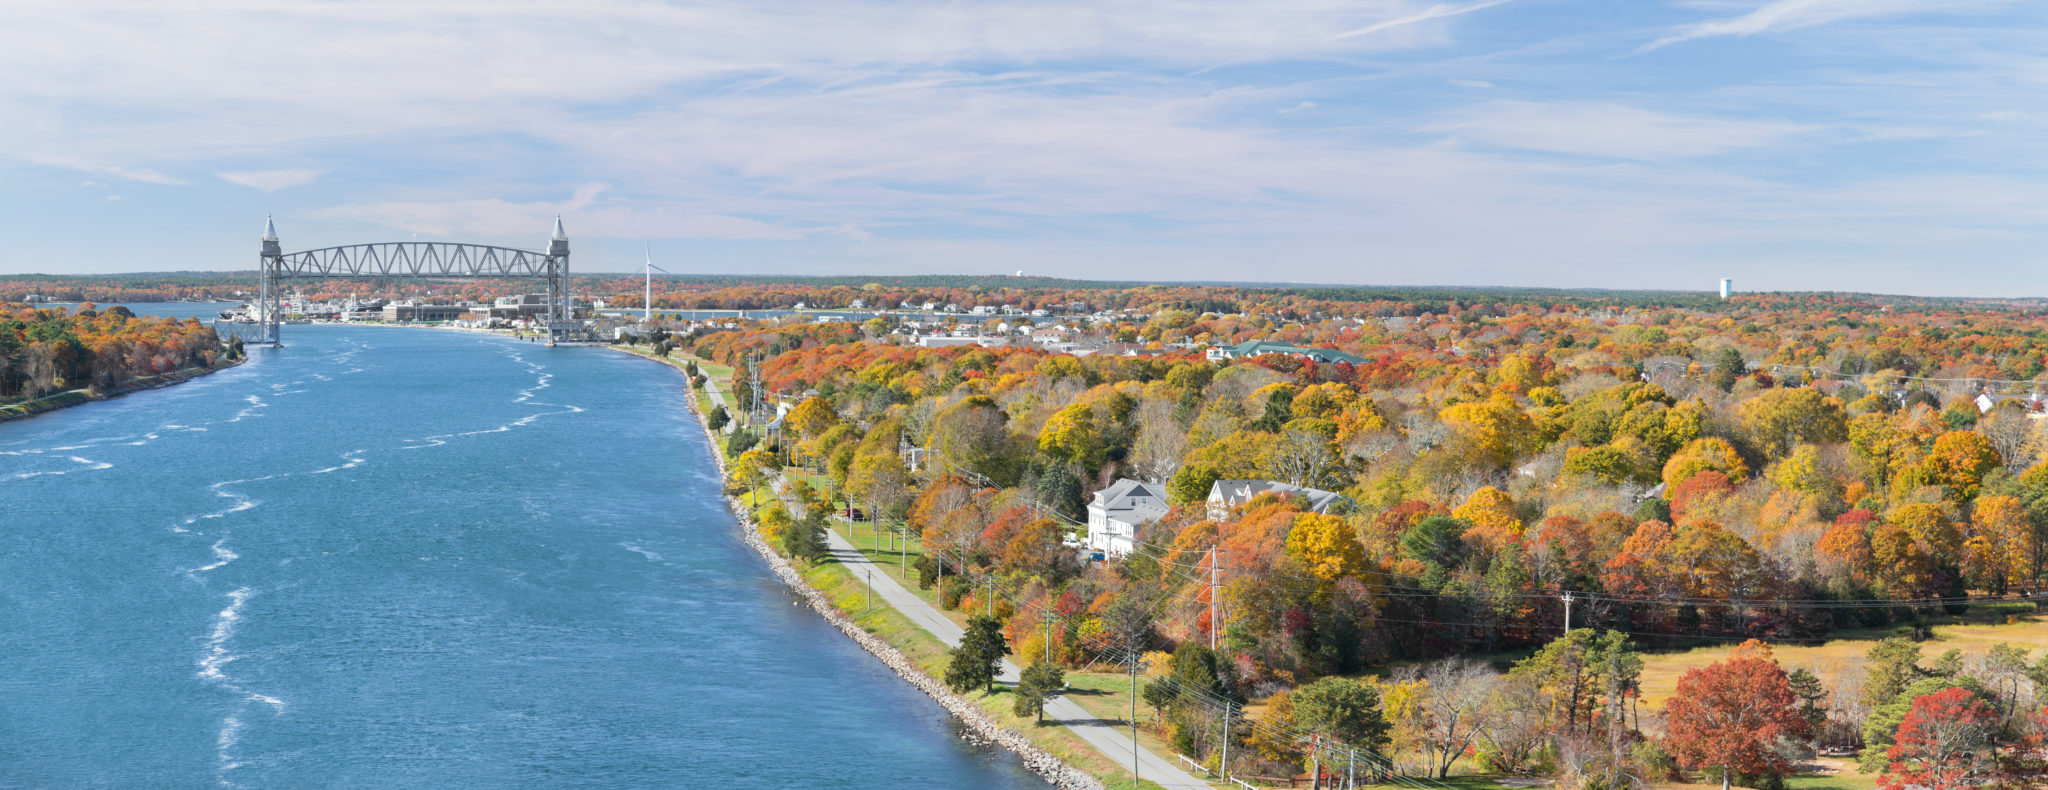 Cape Cod Canal on an Autumn day